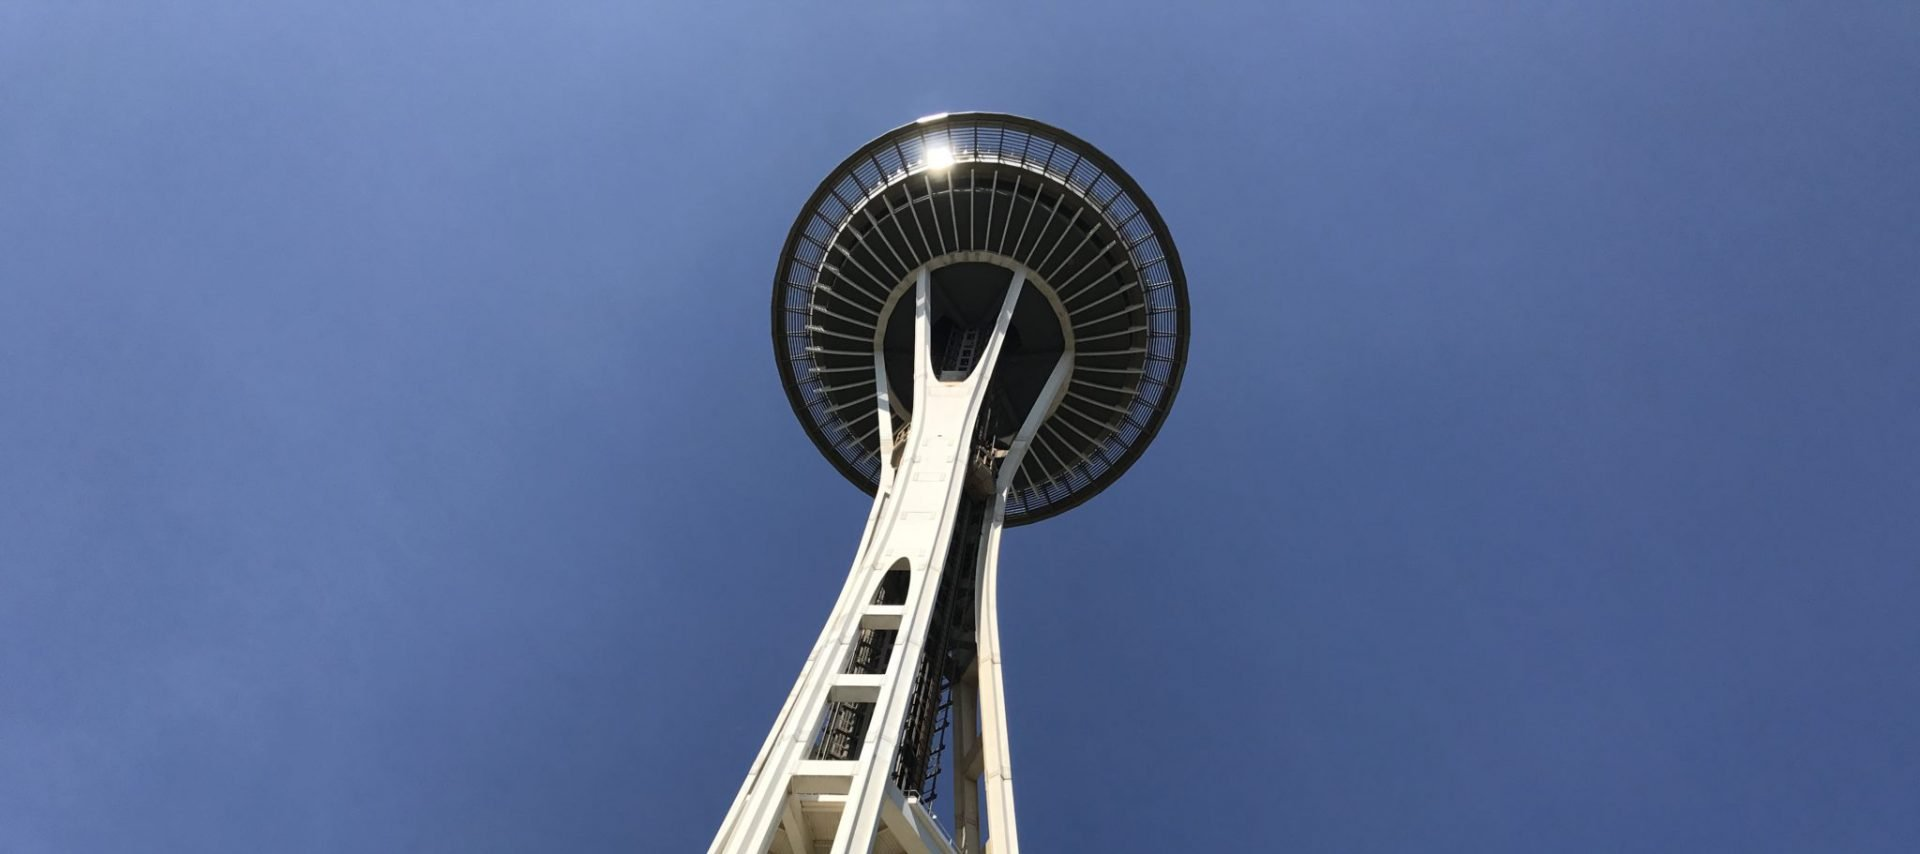 Twofer: Seattle Space Needle and Chihuly Garden & Glass